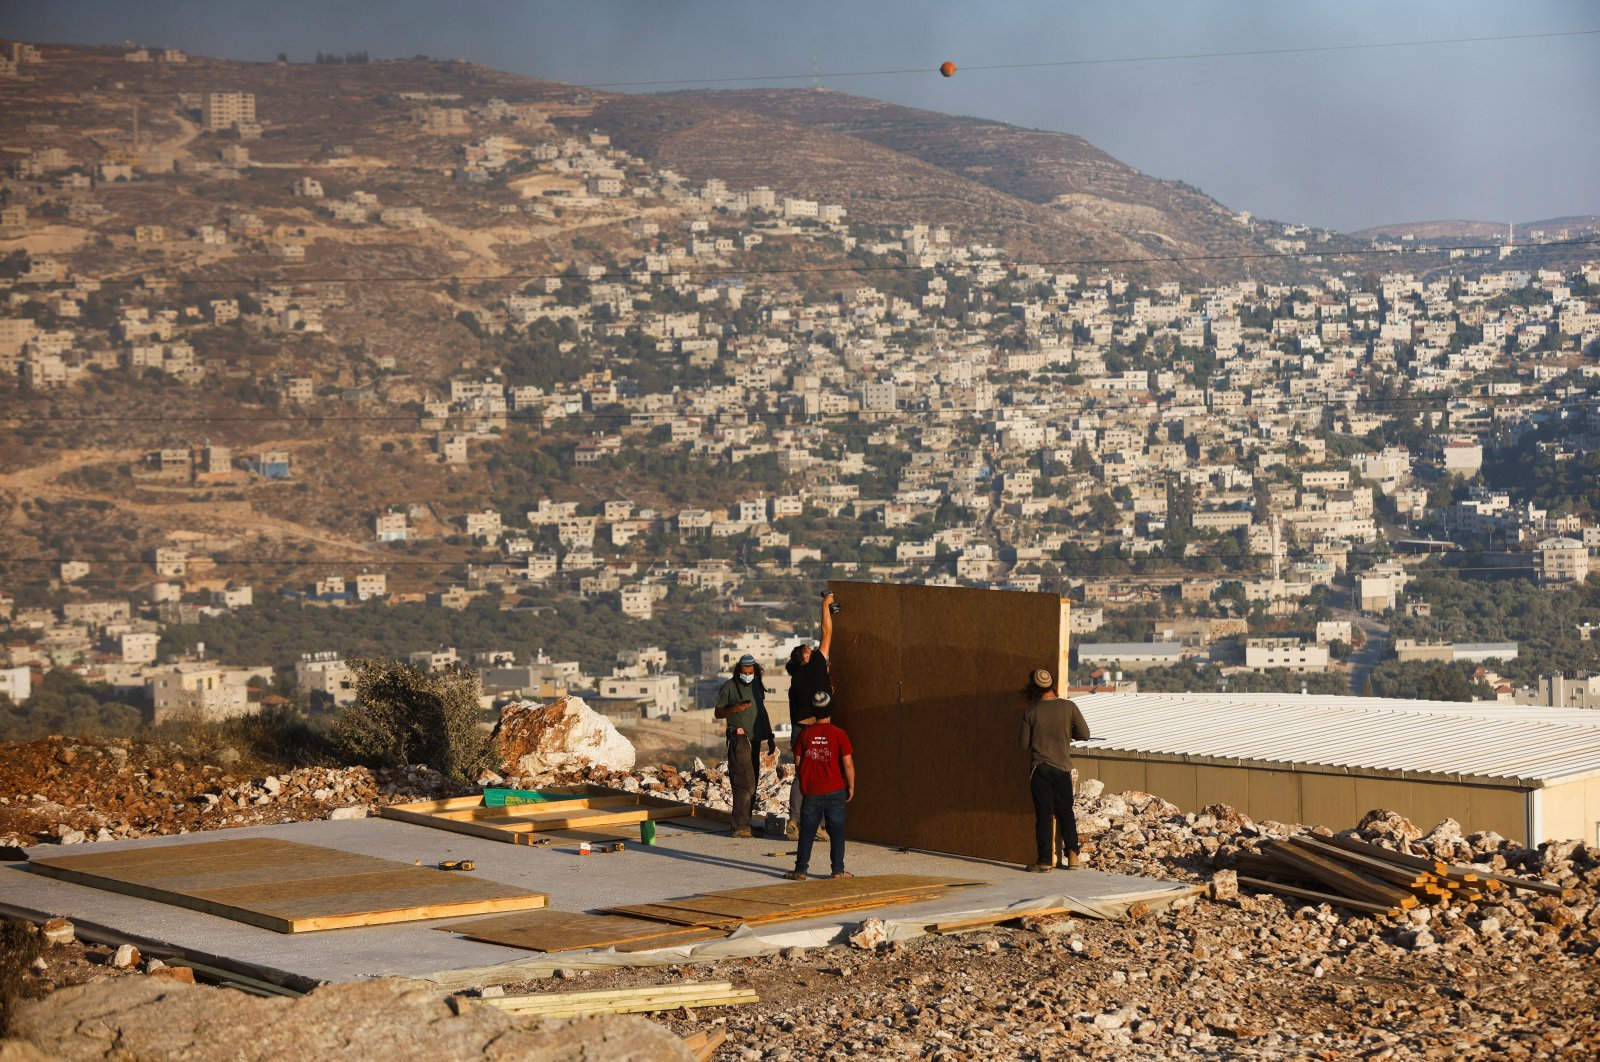 Jewish settlers construct a structure in a new Israeli settler outpost near the Palestinian village of Beita, in Givat Eviatar, Israeli-occupied West Bank, Palestine, June 23, 2021. (Reuters Photo)